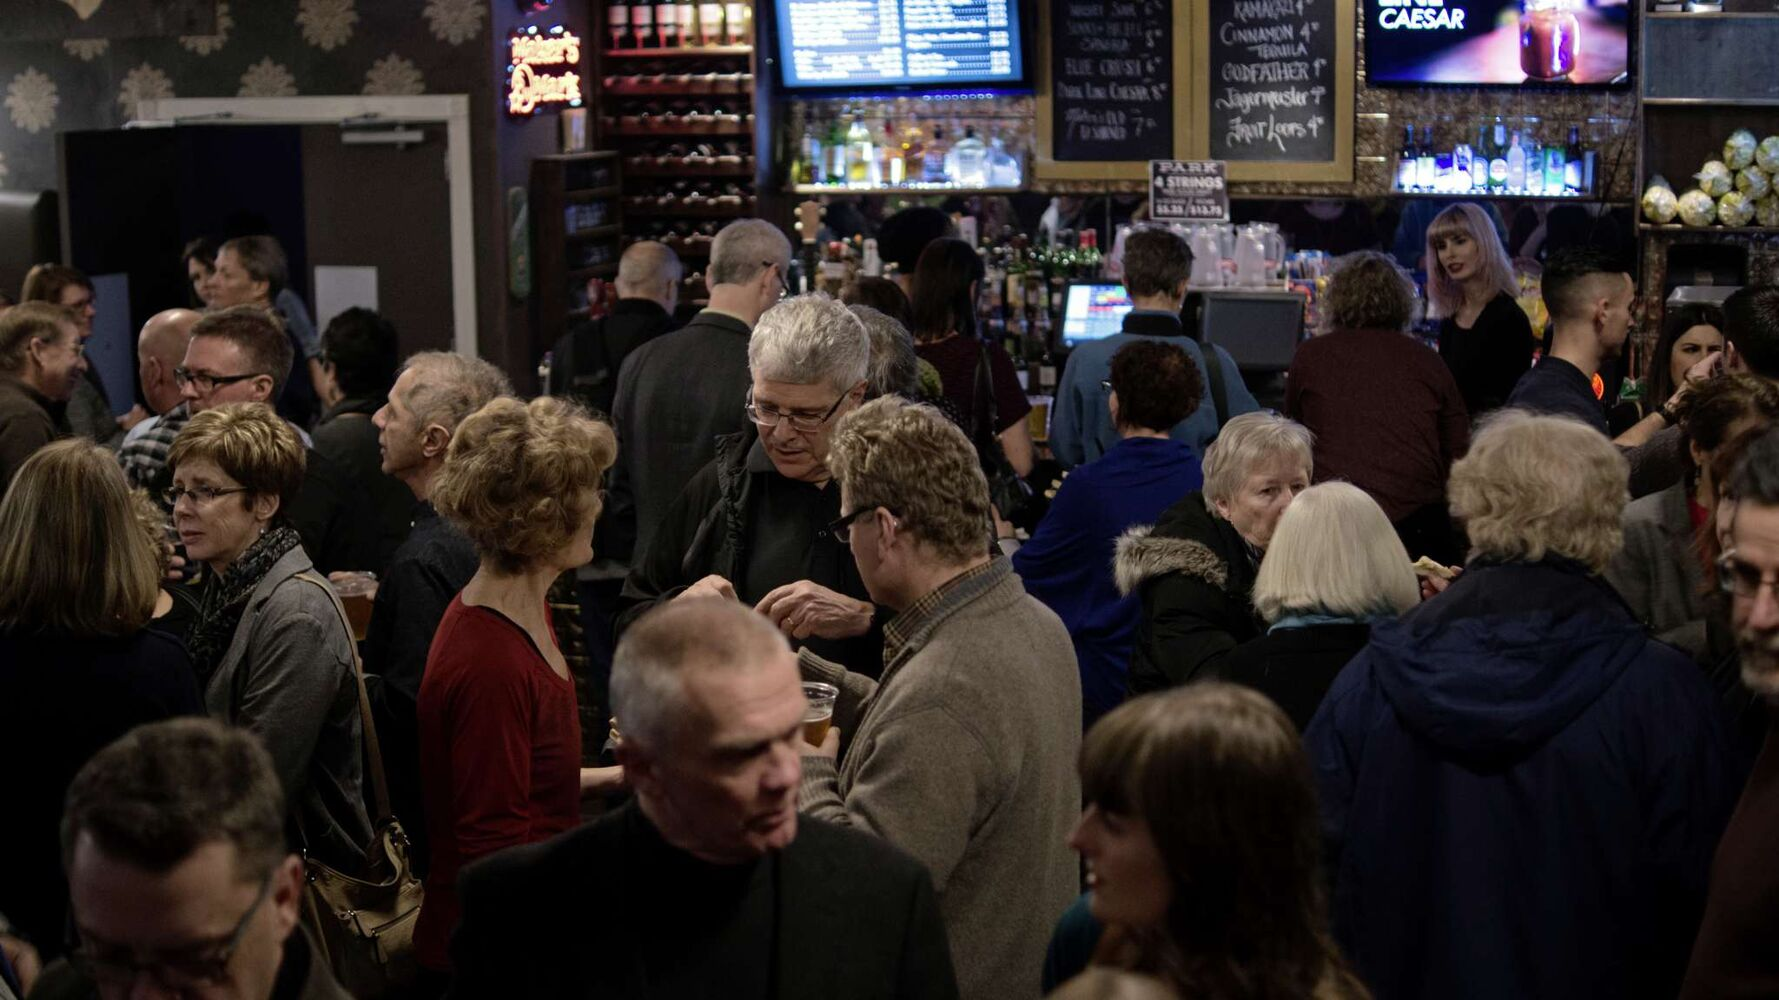 Approximately 350 people turned out to support the benefit concert at The Park Theatre. (Danielle Da Silva - Sou'wester)